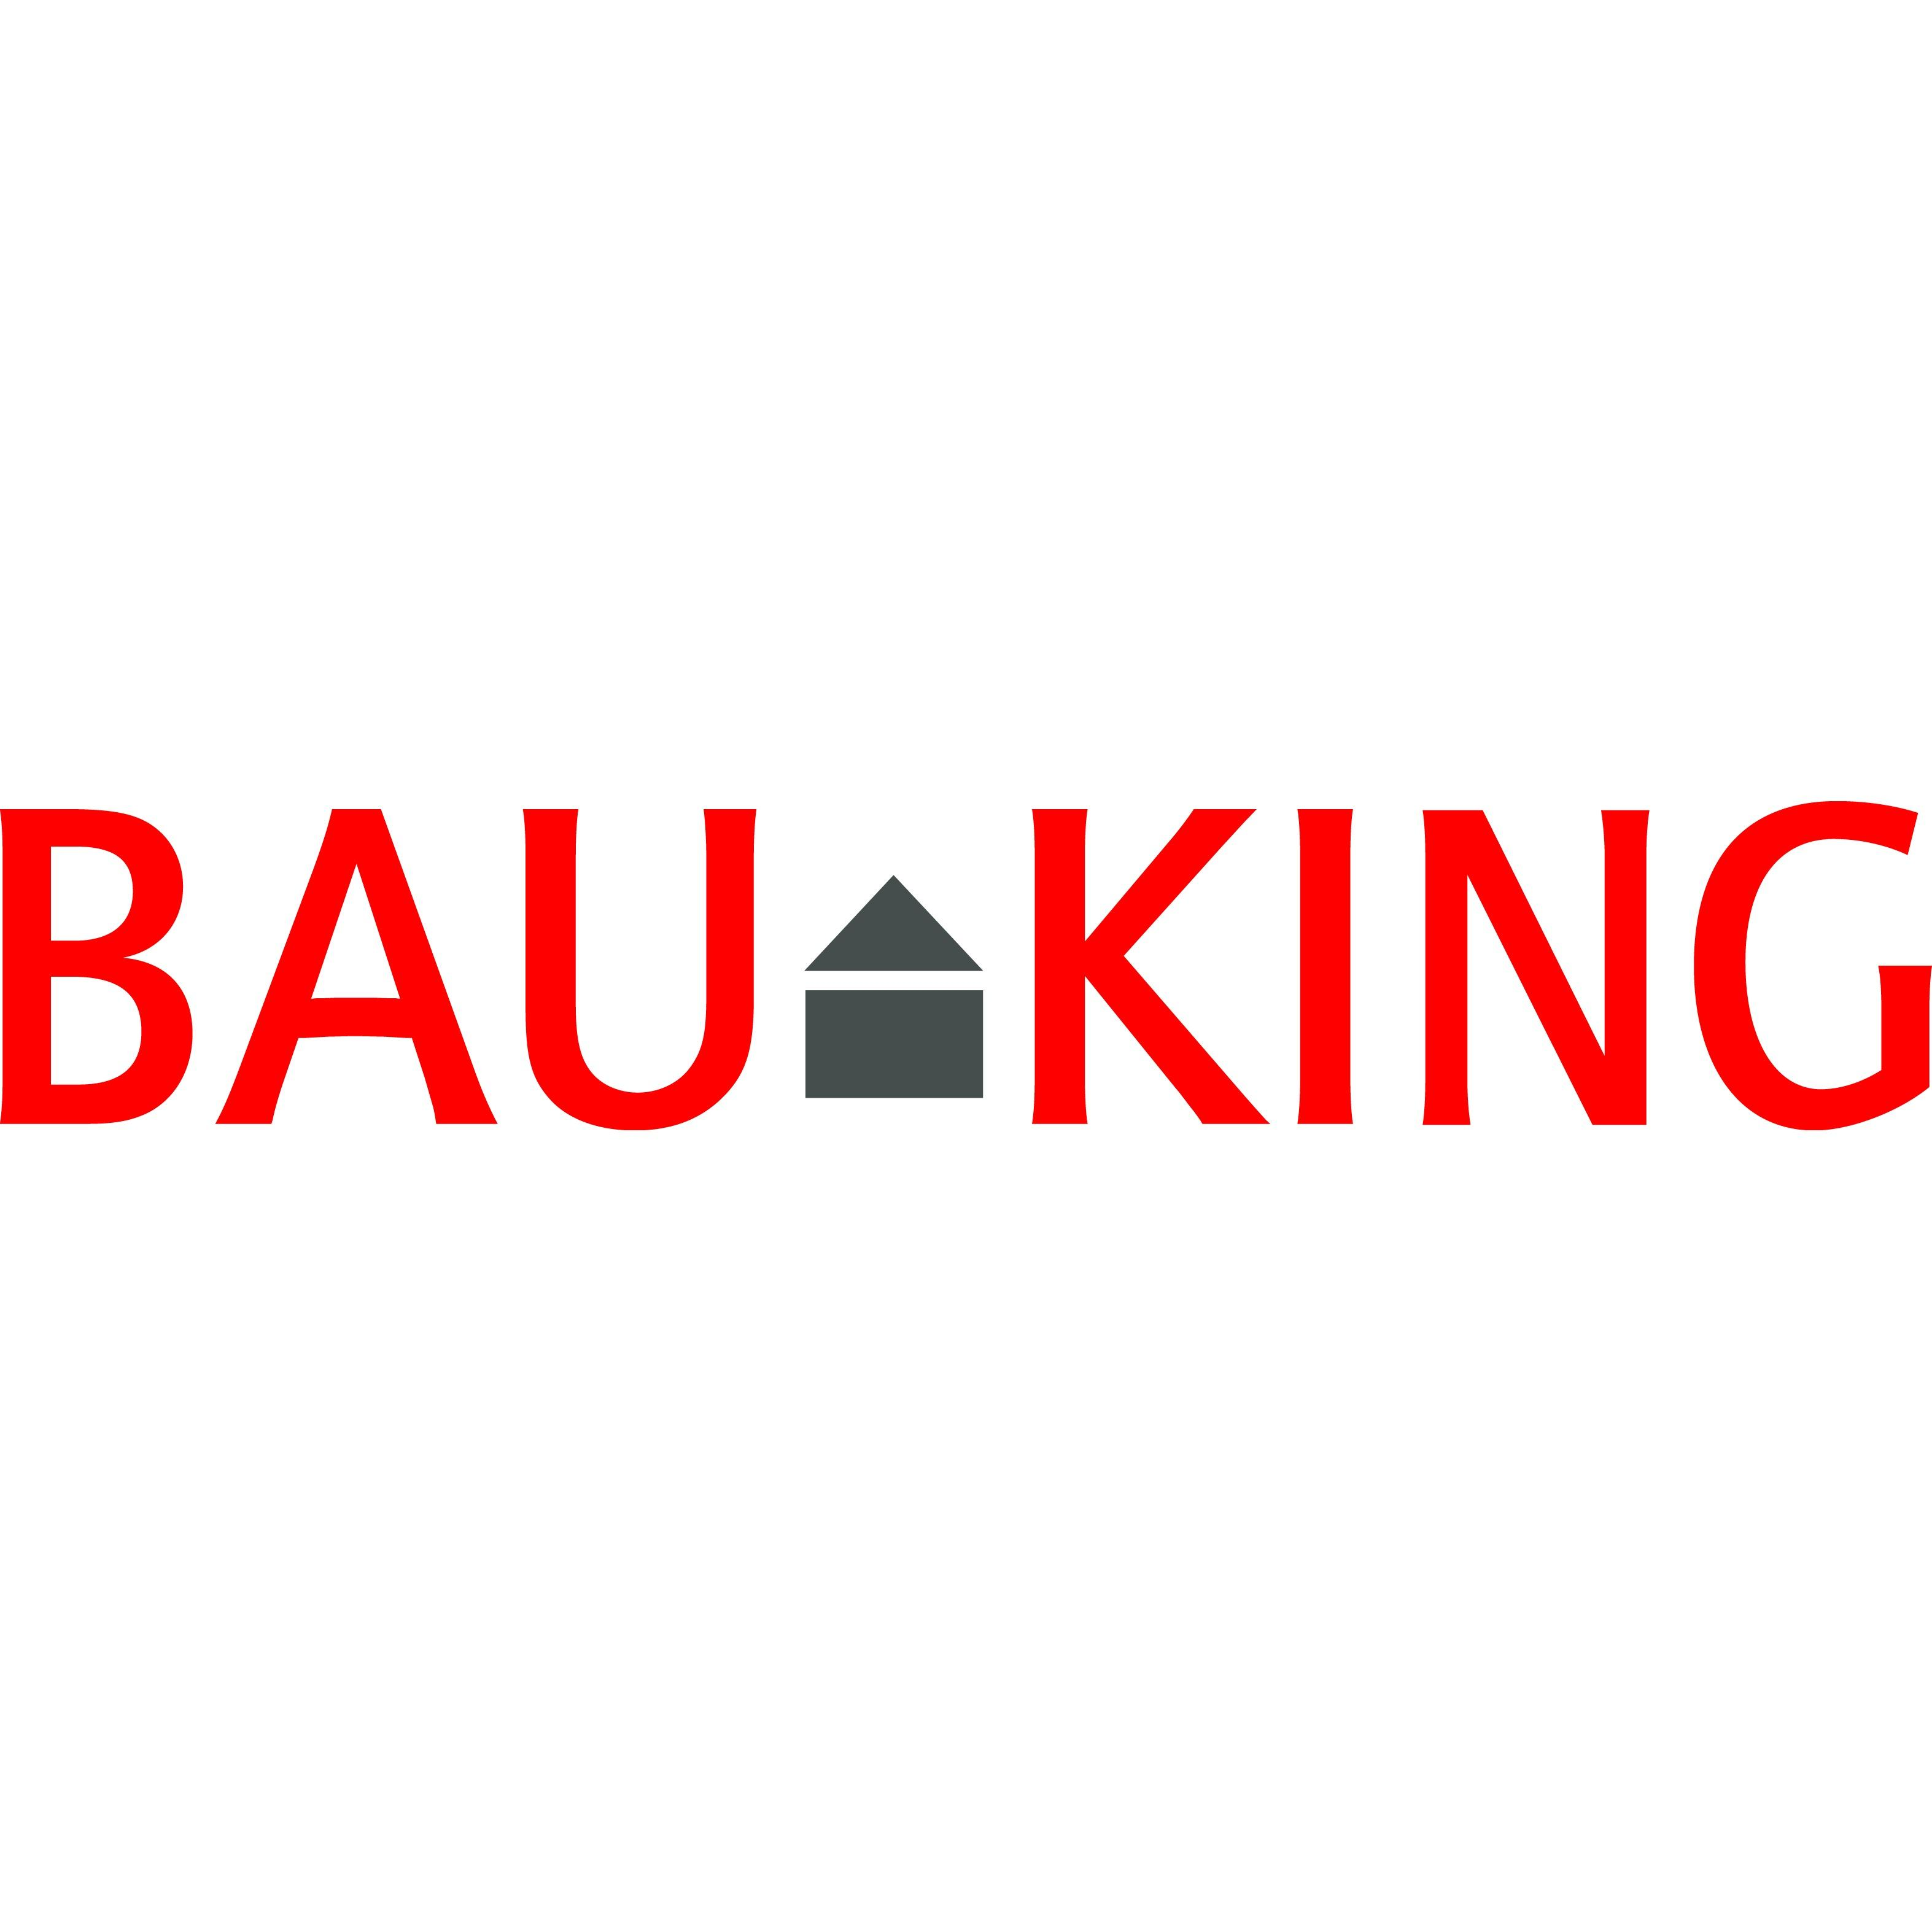 BAUKING Wuppertal